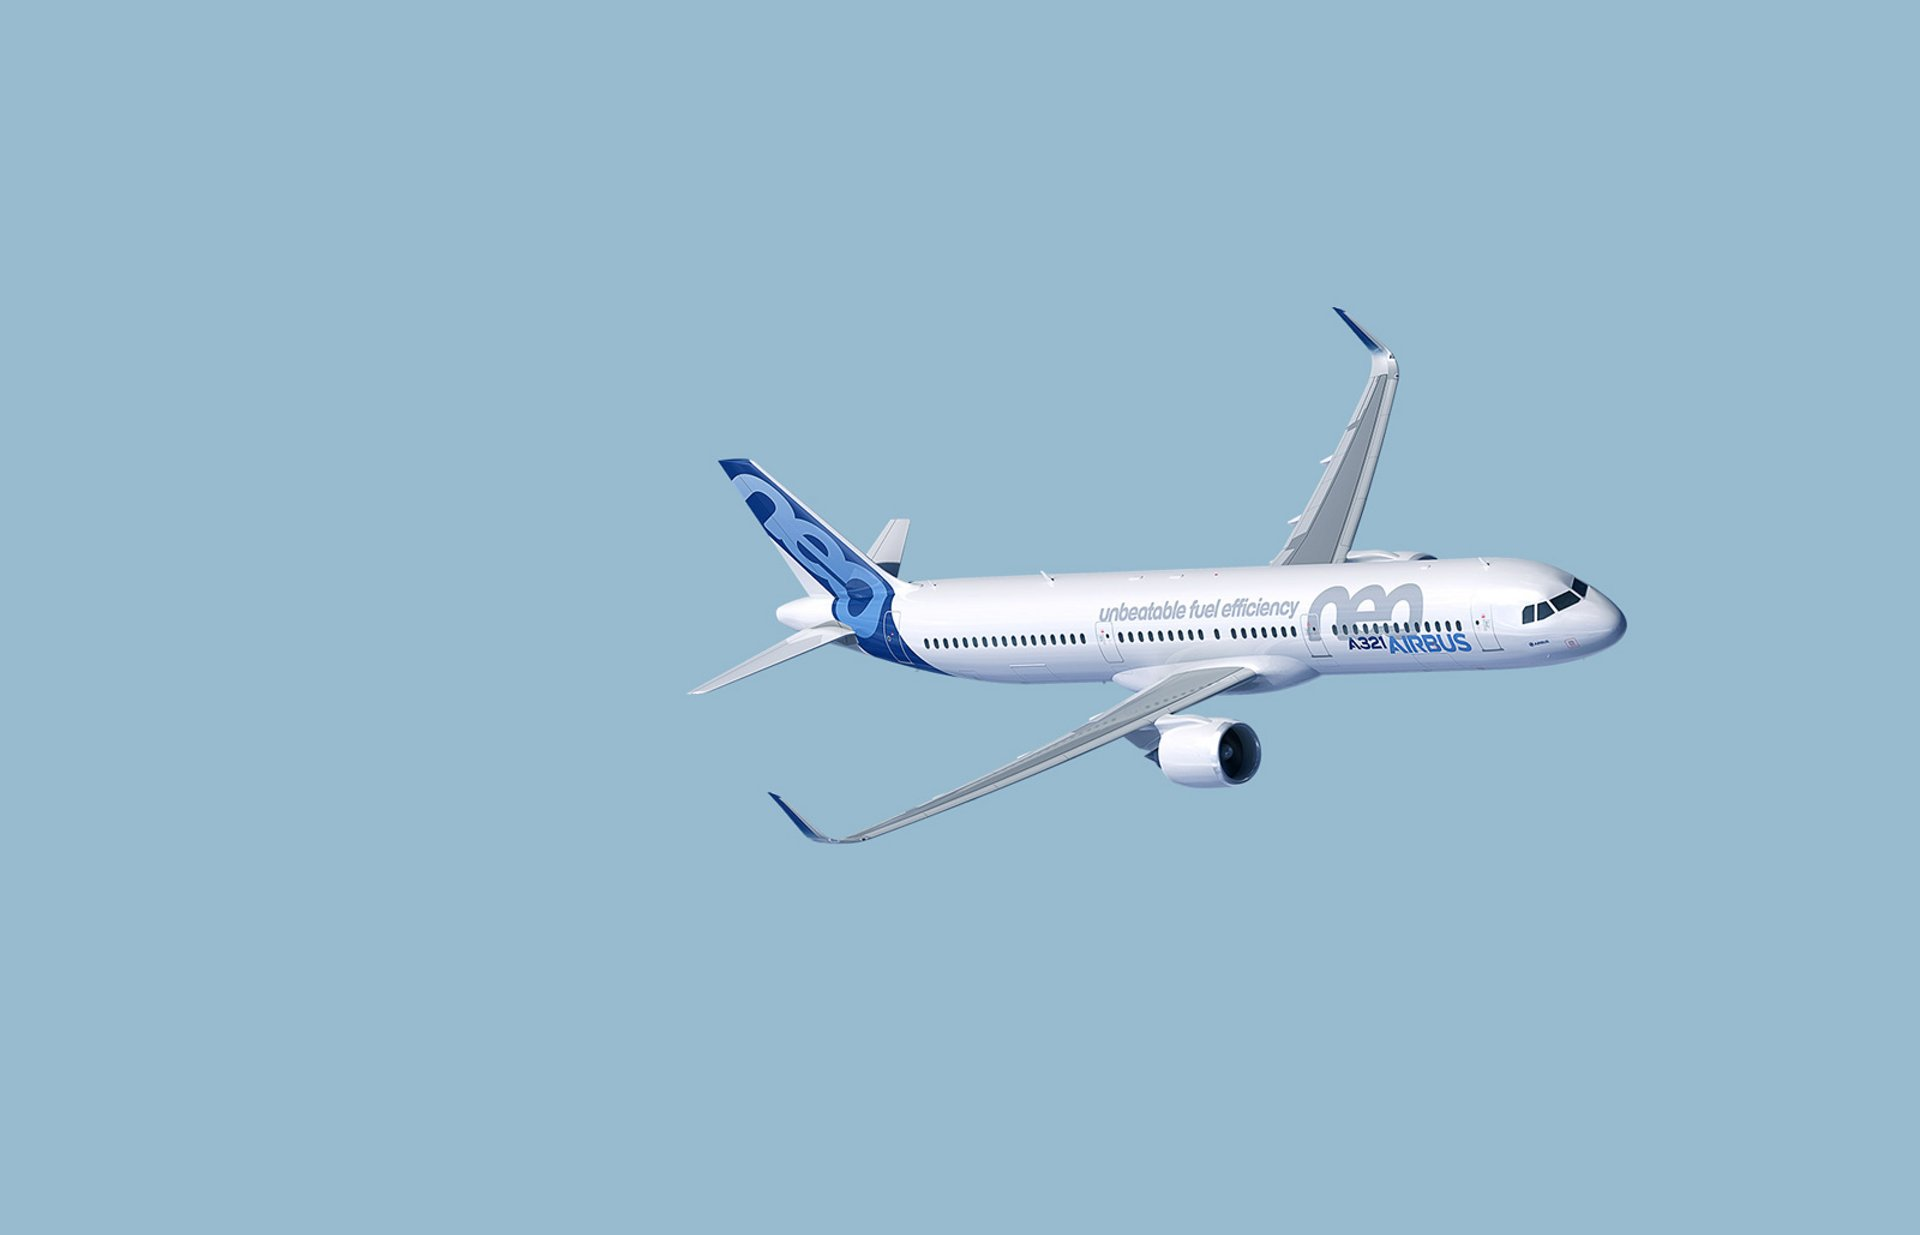 A321neo in flight